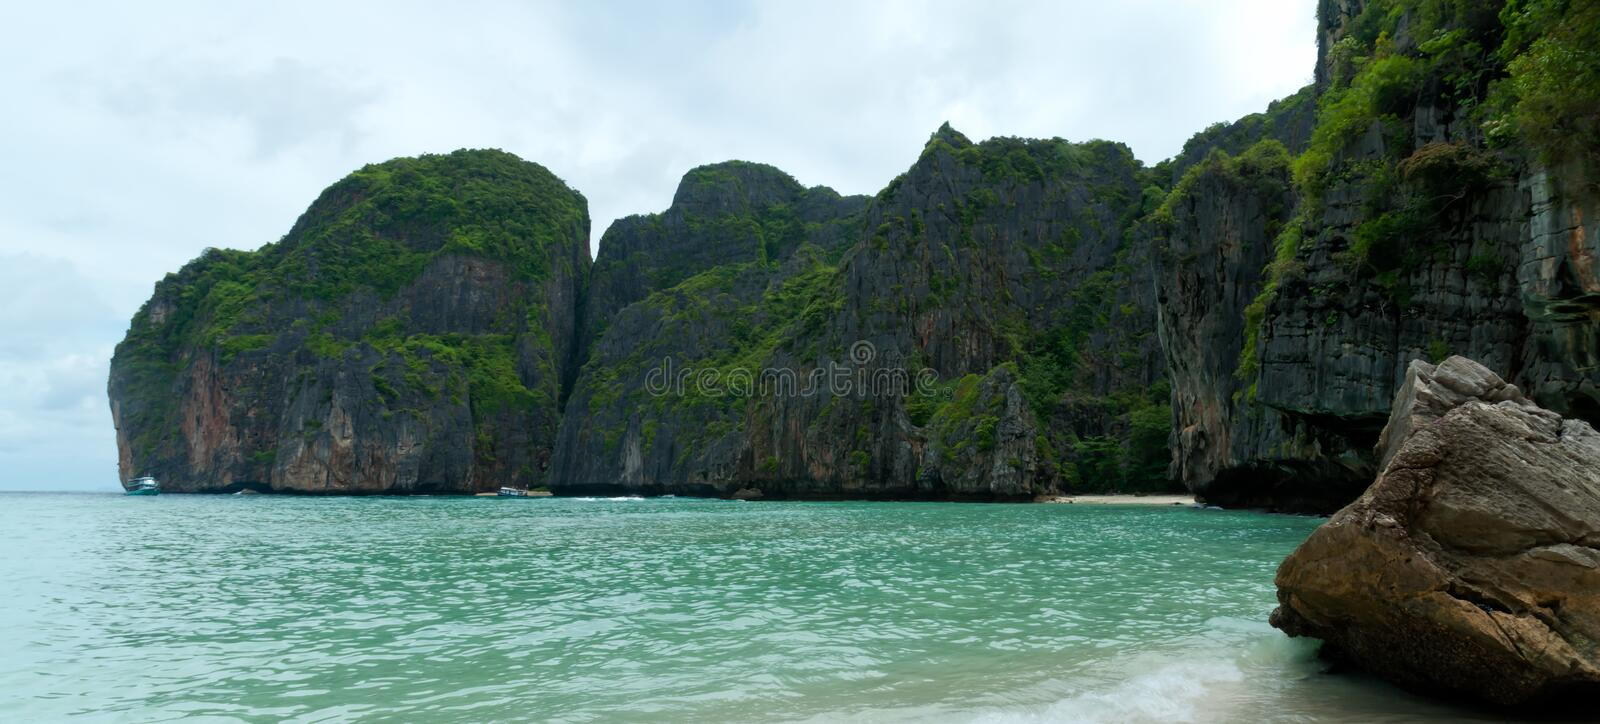 Download Tropical Remote Island In The Ocean Stock Photo - Image: 25185604